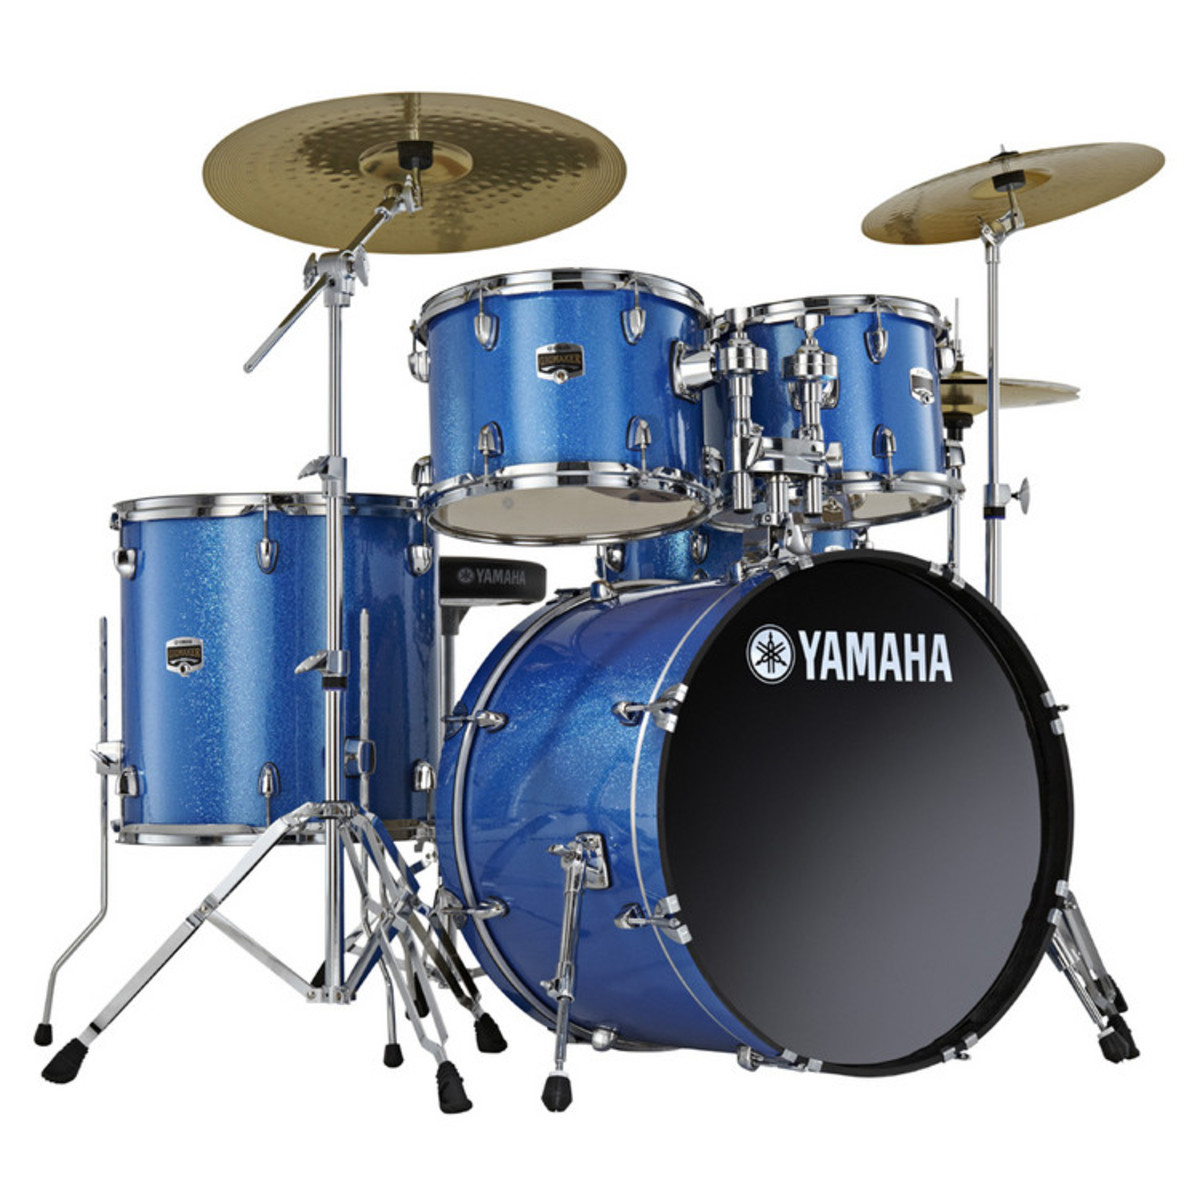 Yamaha Gigmaker Fusion Drum Kit Review